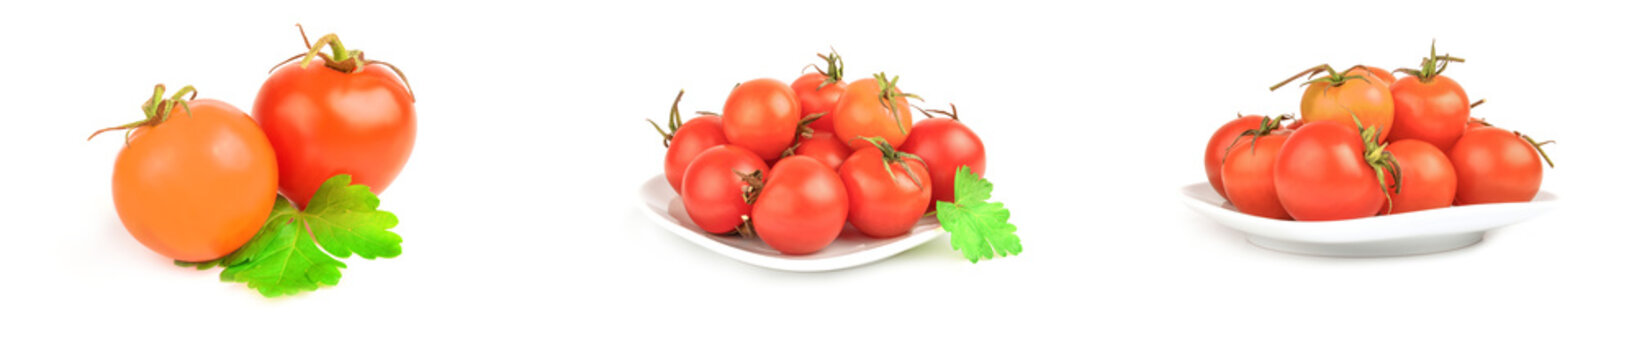 Set of cherry tomatoes isolated on a white background cutout